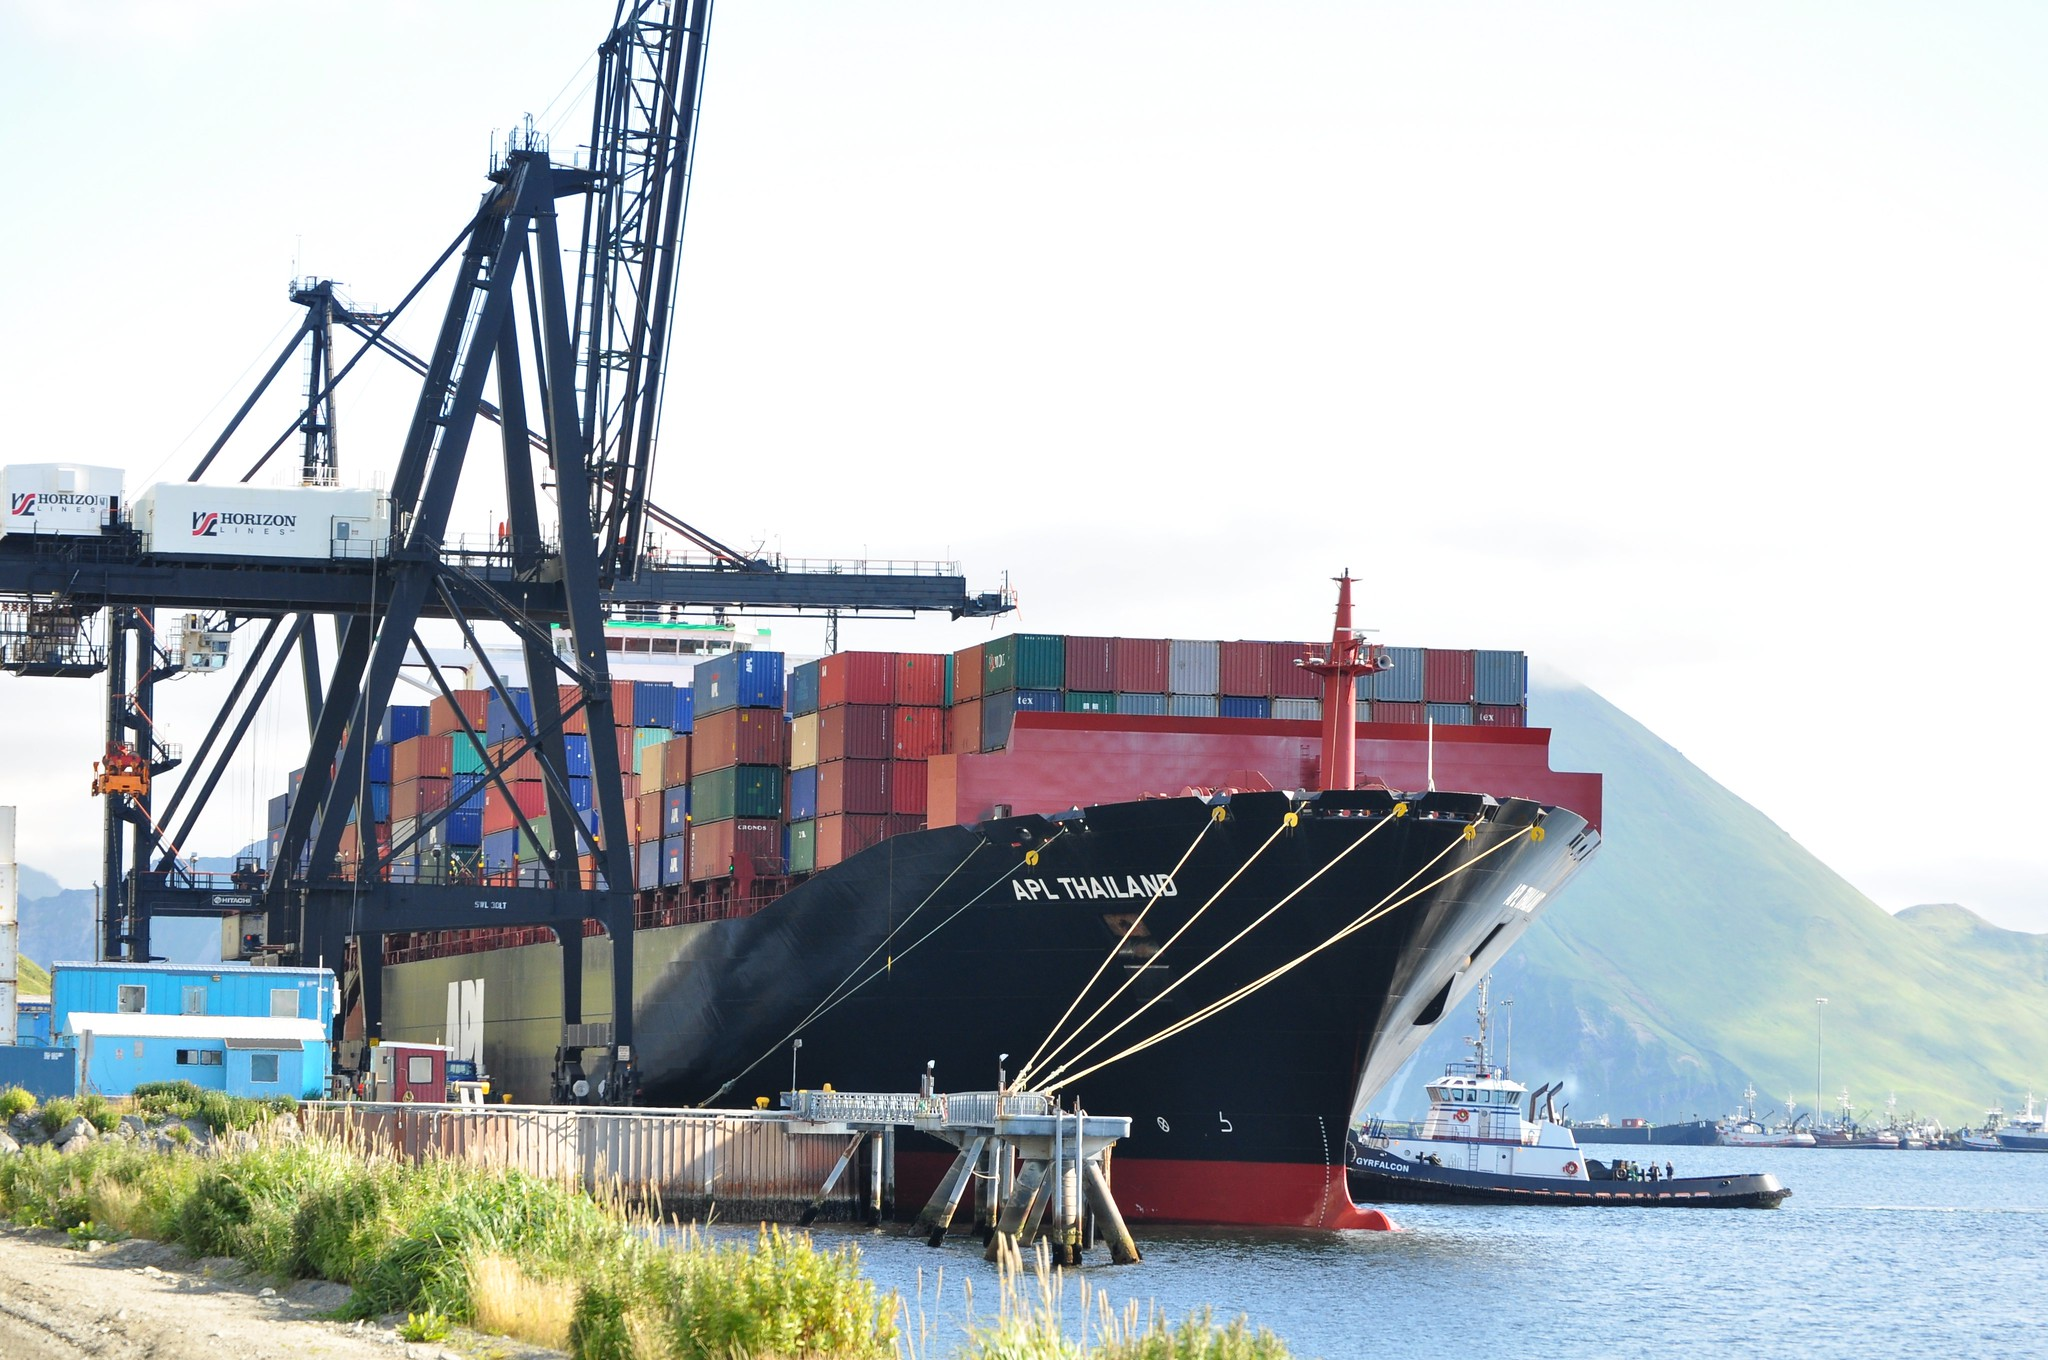 Shipping traffic increases risk of alien invasion